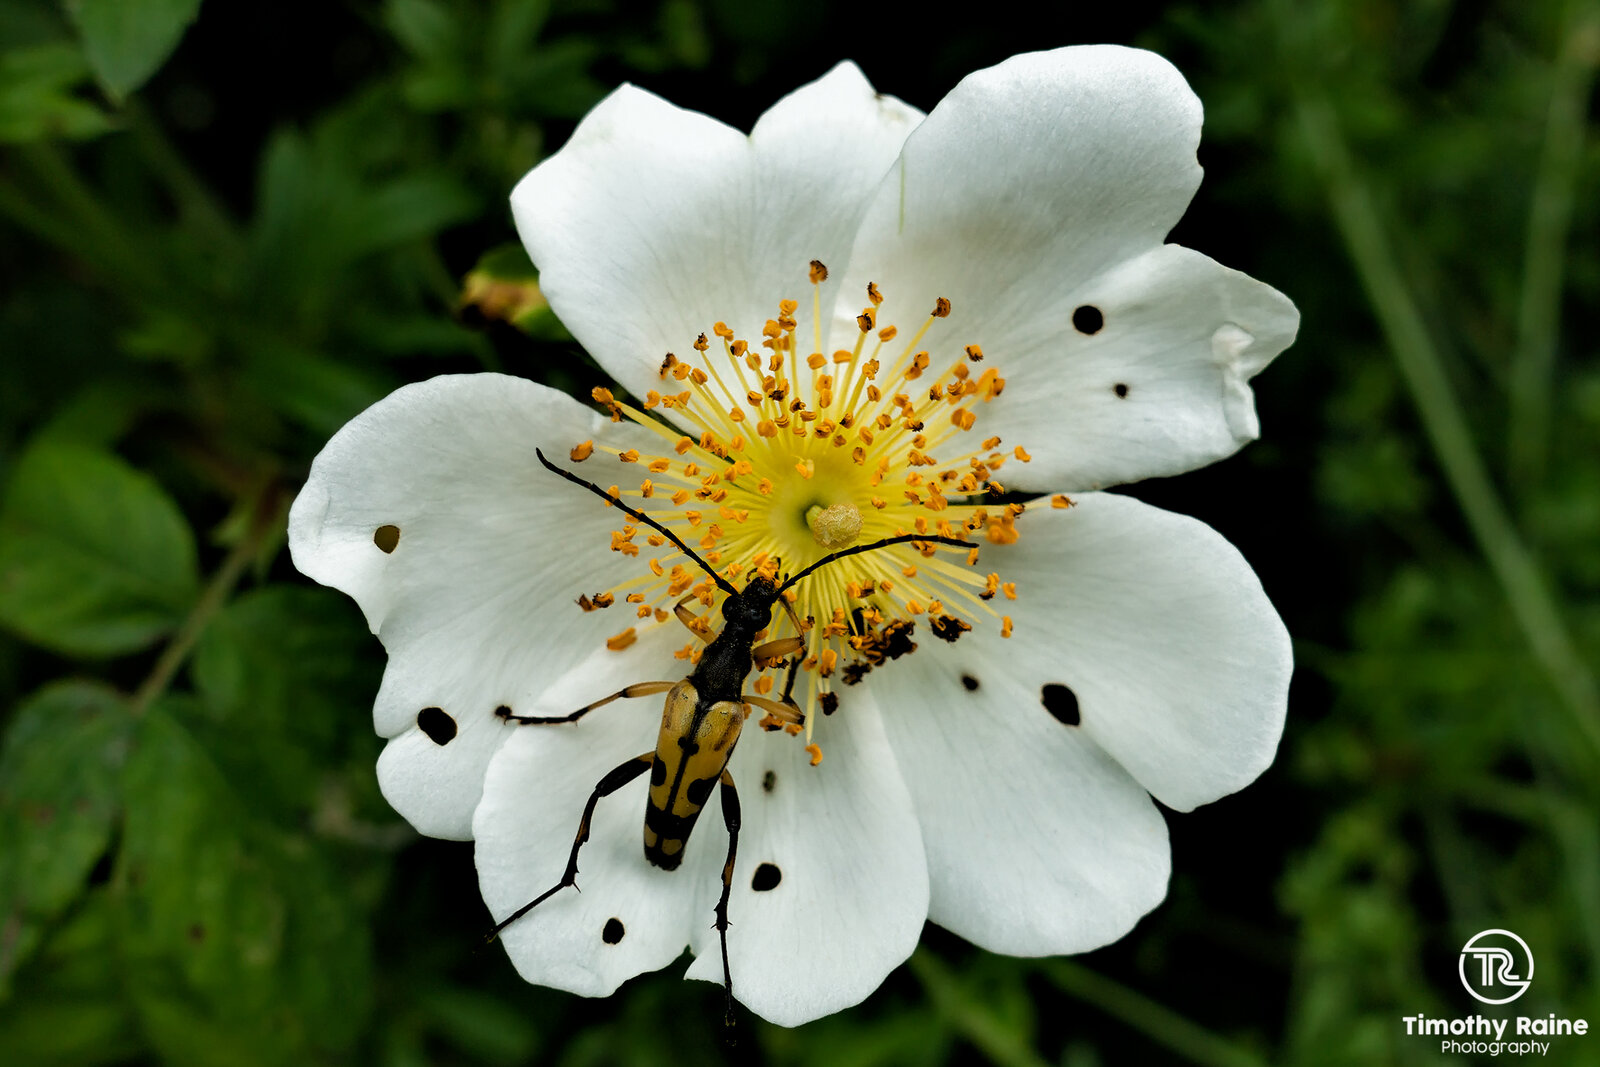 Yellow and black beetle on white flower.jpg